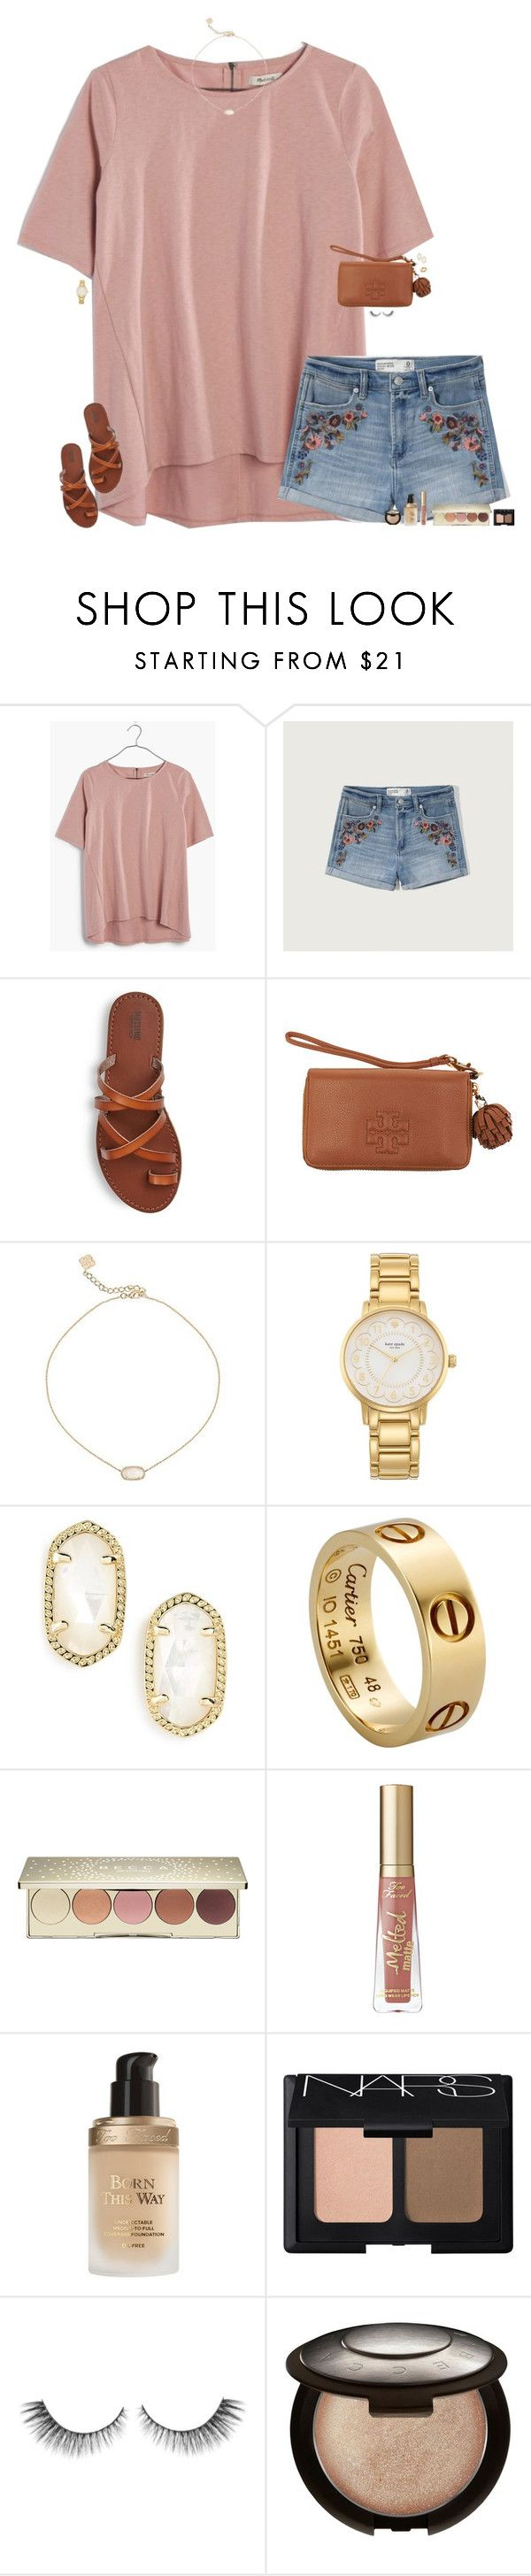 """""""I wish I could just throw myself at you and it would be okay."""" by maggie-prep ❤ liked on Polyvore featuring Madewell, Abercrombie & Fitch, Tory Burch, Kendra Scott, Kate Spade, Cartier, Becca, Too Faced Cosmetics and NARS Cosmetics"""